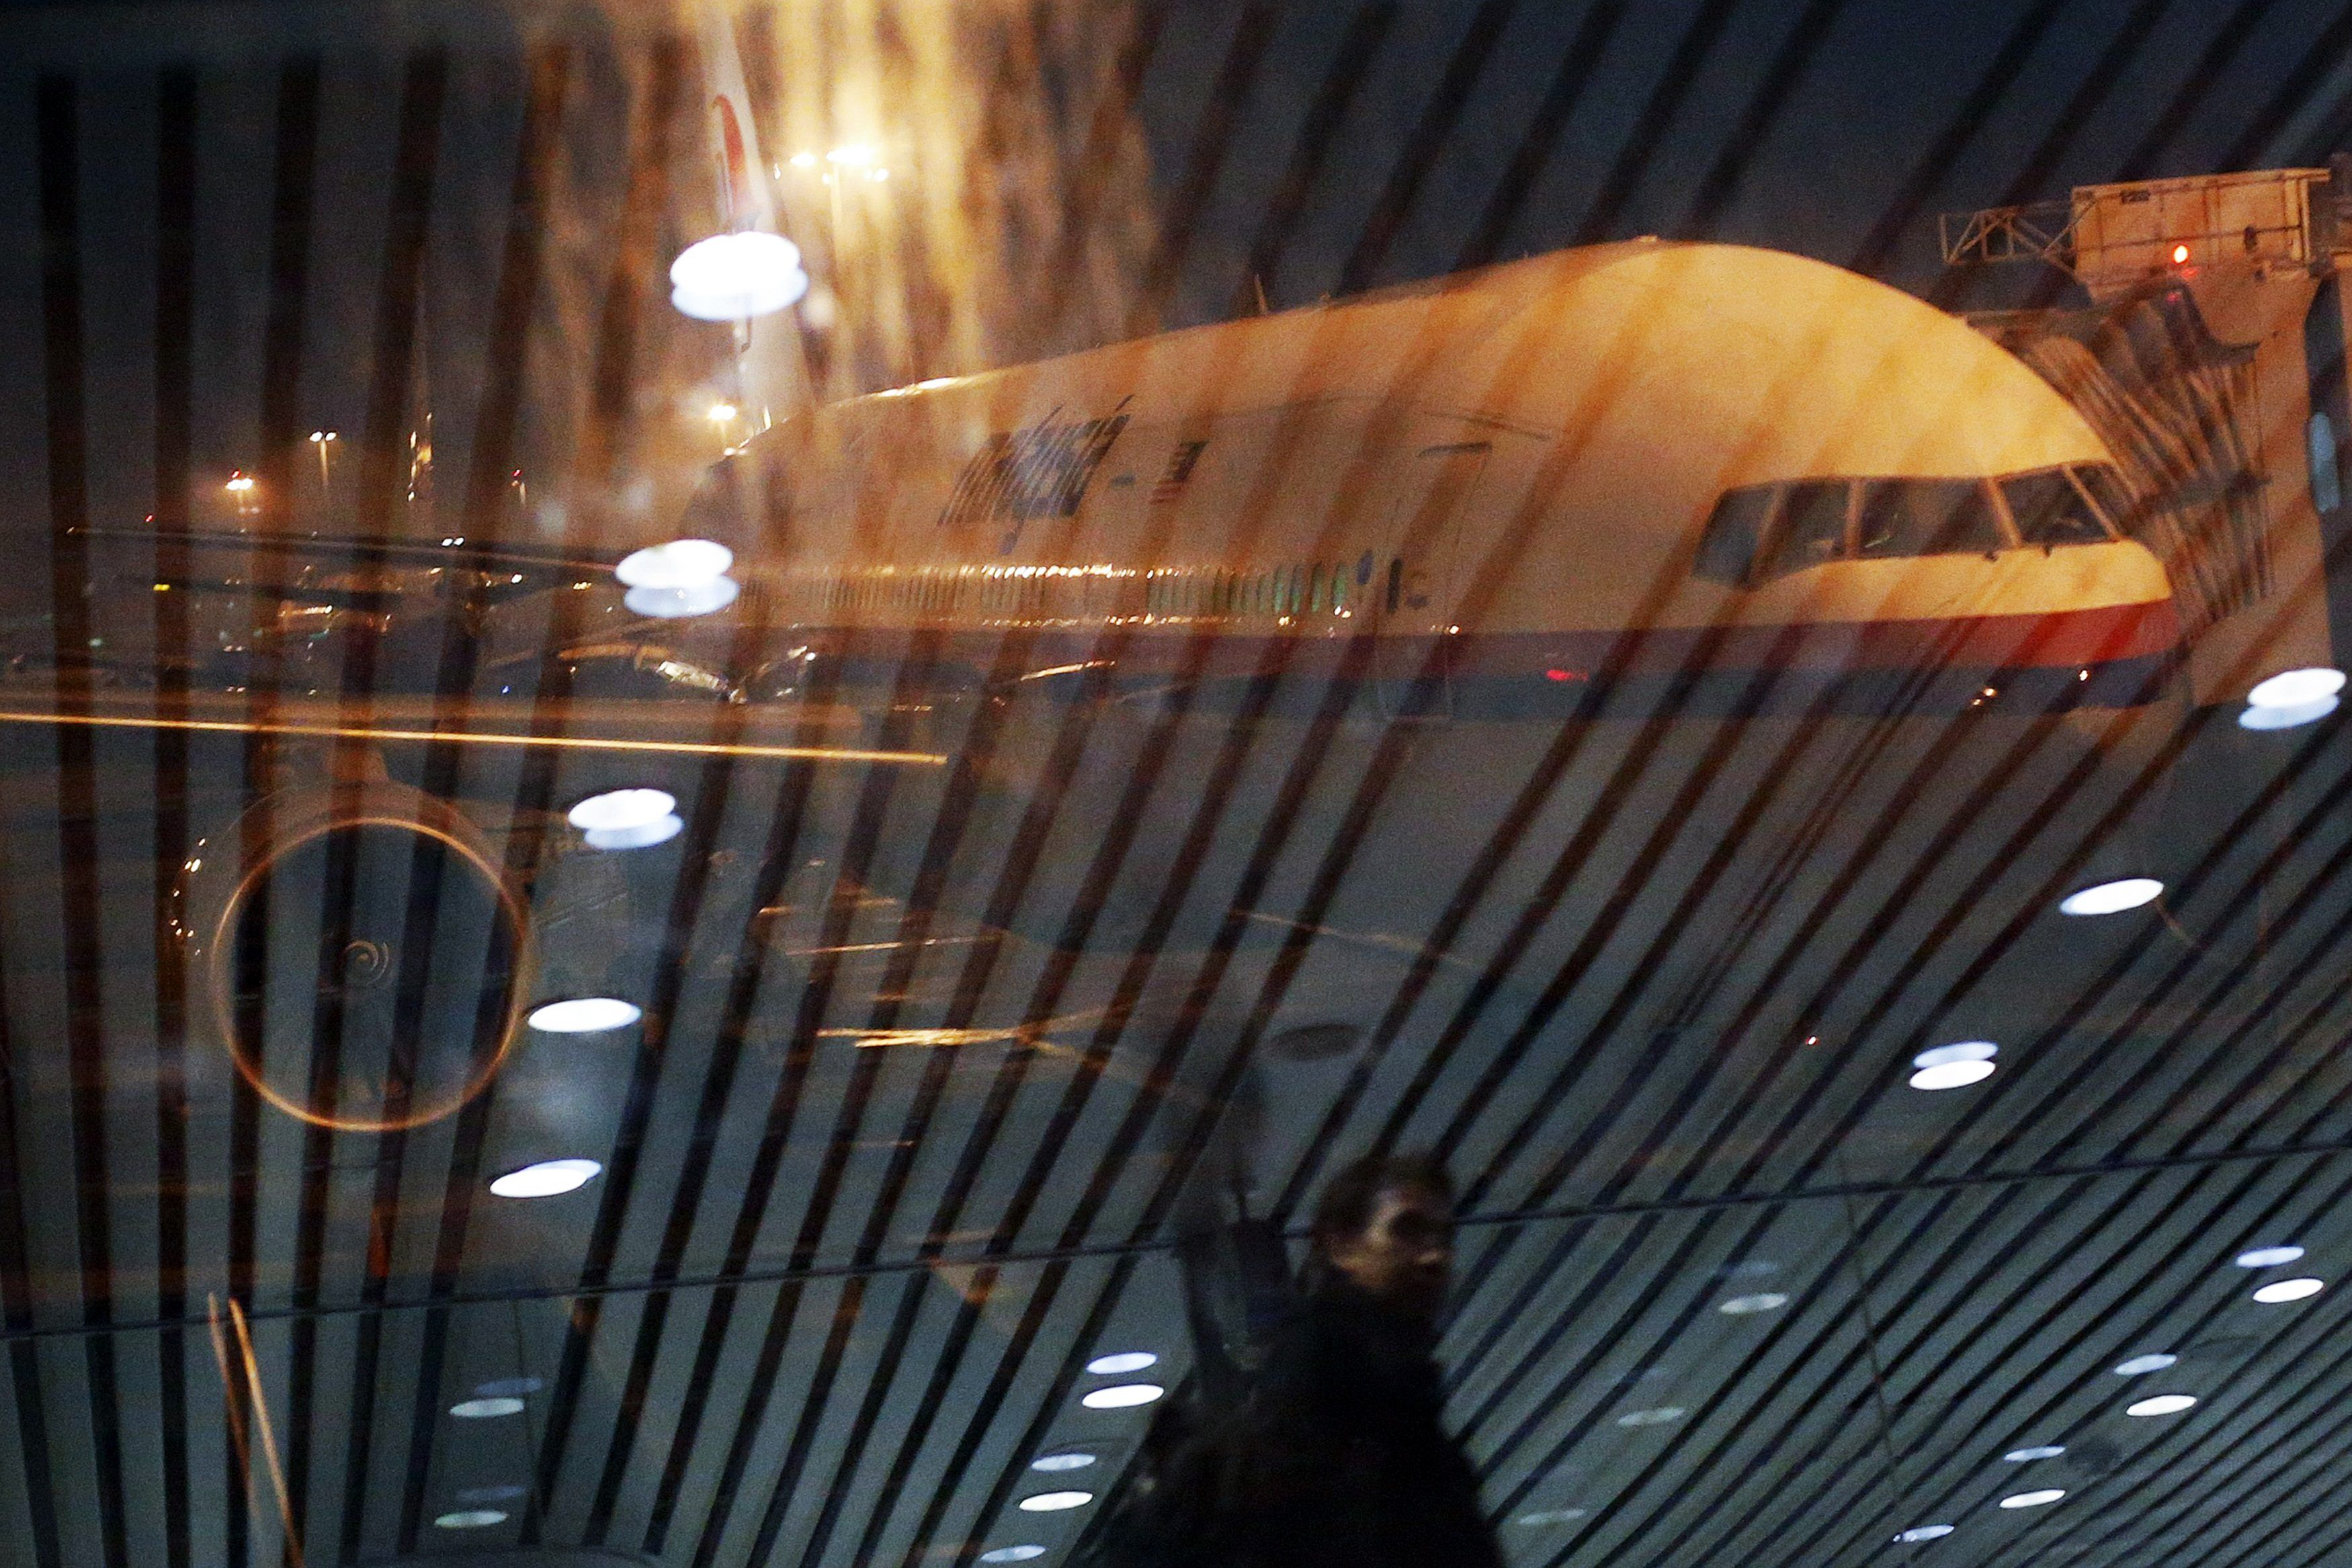 Malaysia Airlines Boeing 777-200ER flight MH318 to Beijing sits on the tarmac as passengers are reflected in the glass at the boarding gate at Kuala Lumpur International Airport at approximately 12:20am in this March 17, 2014 file photo. — Reuters pic